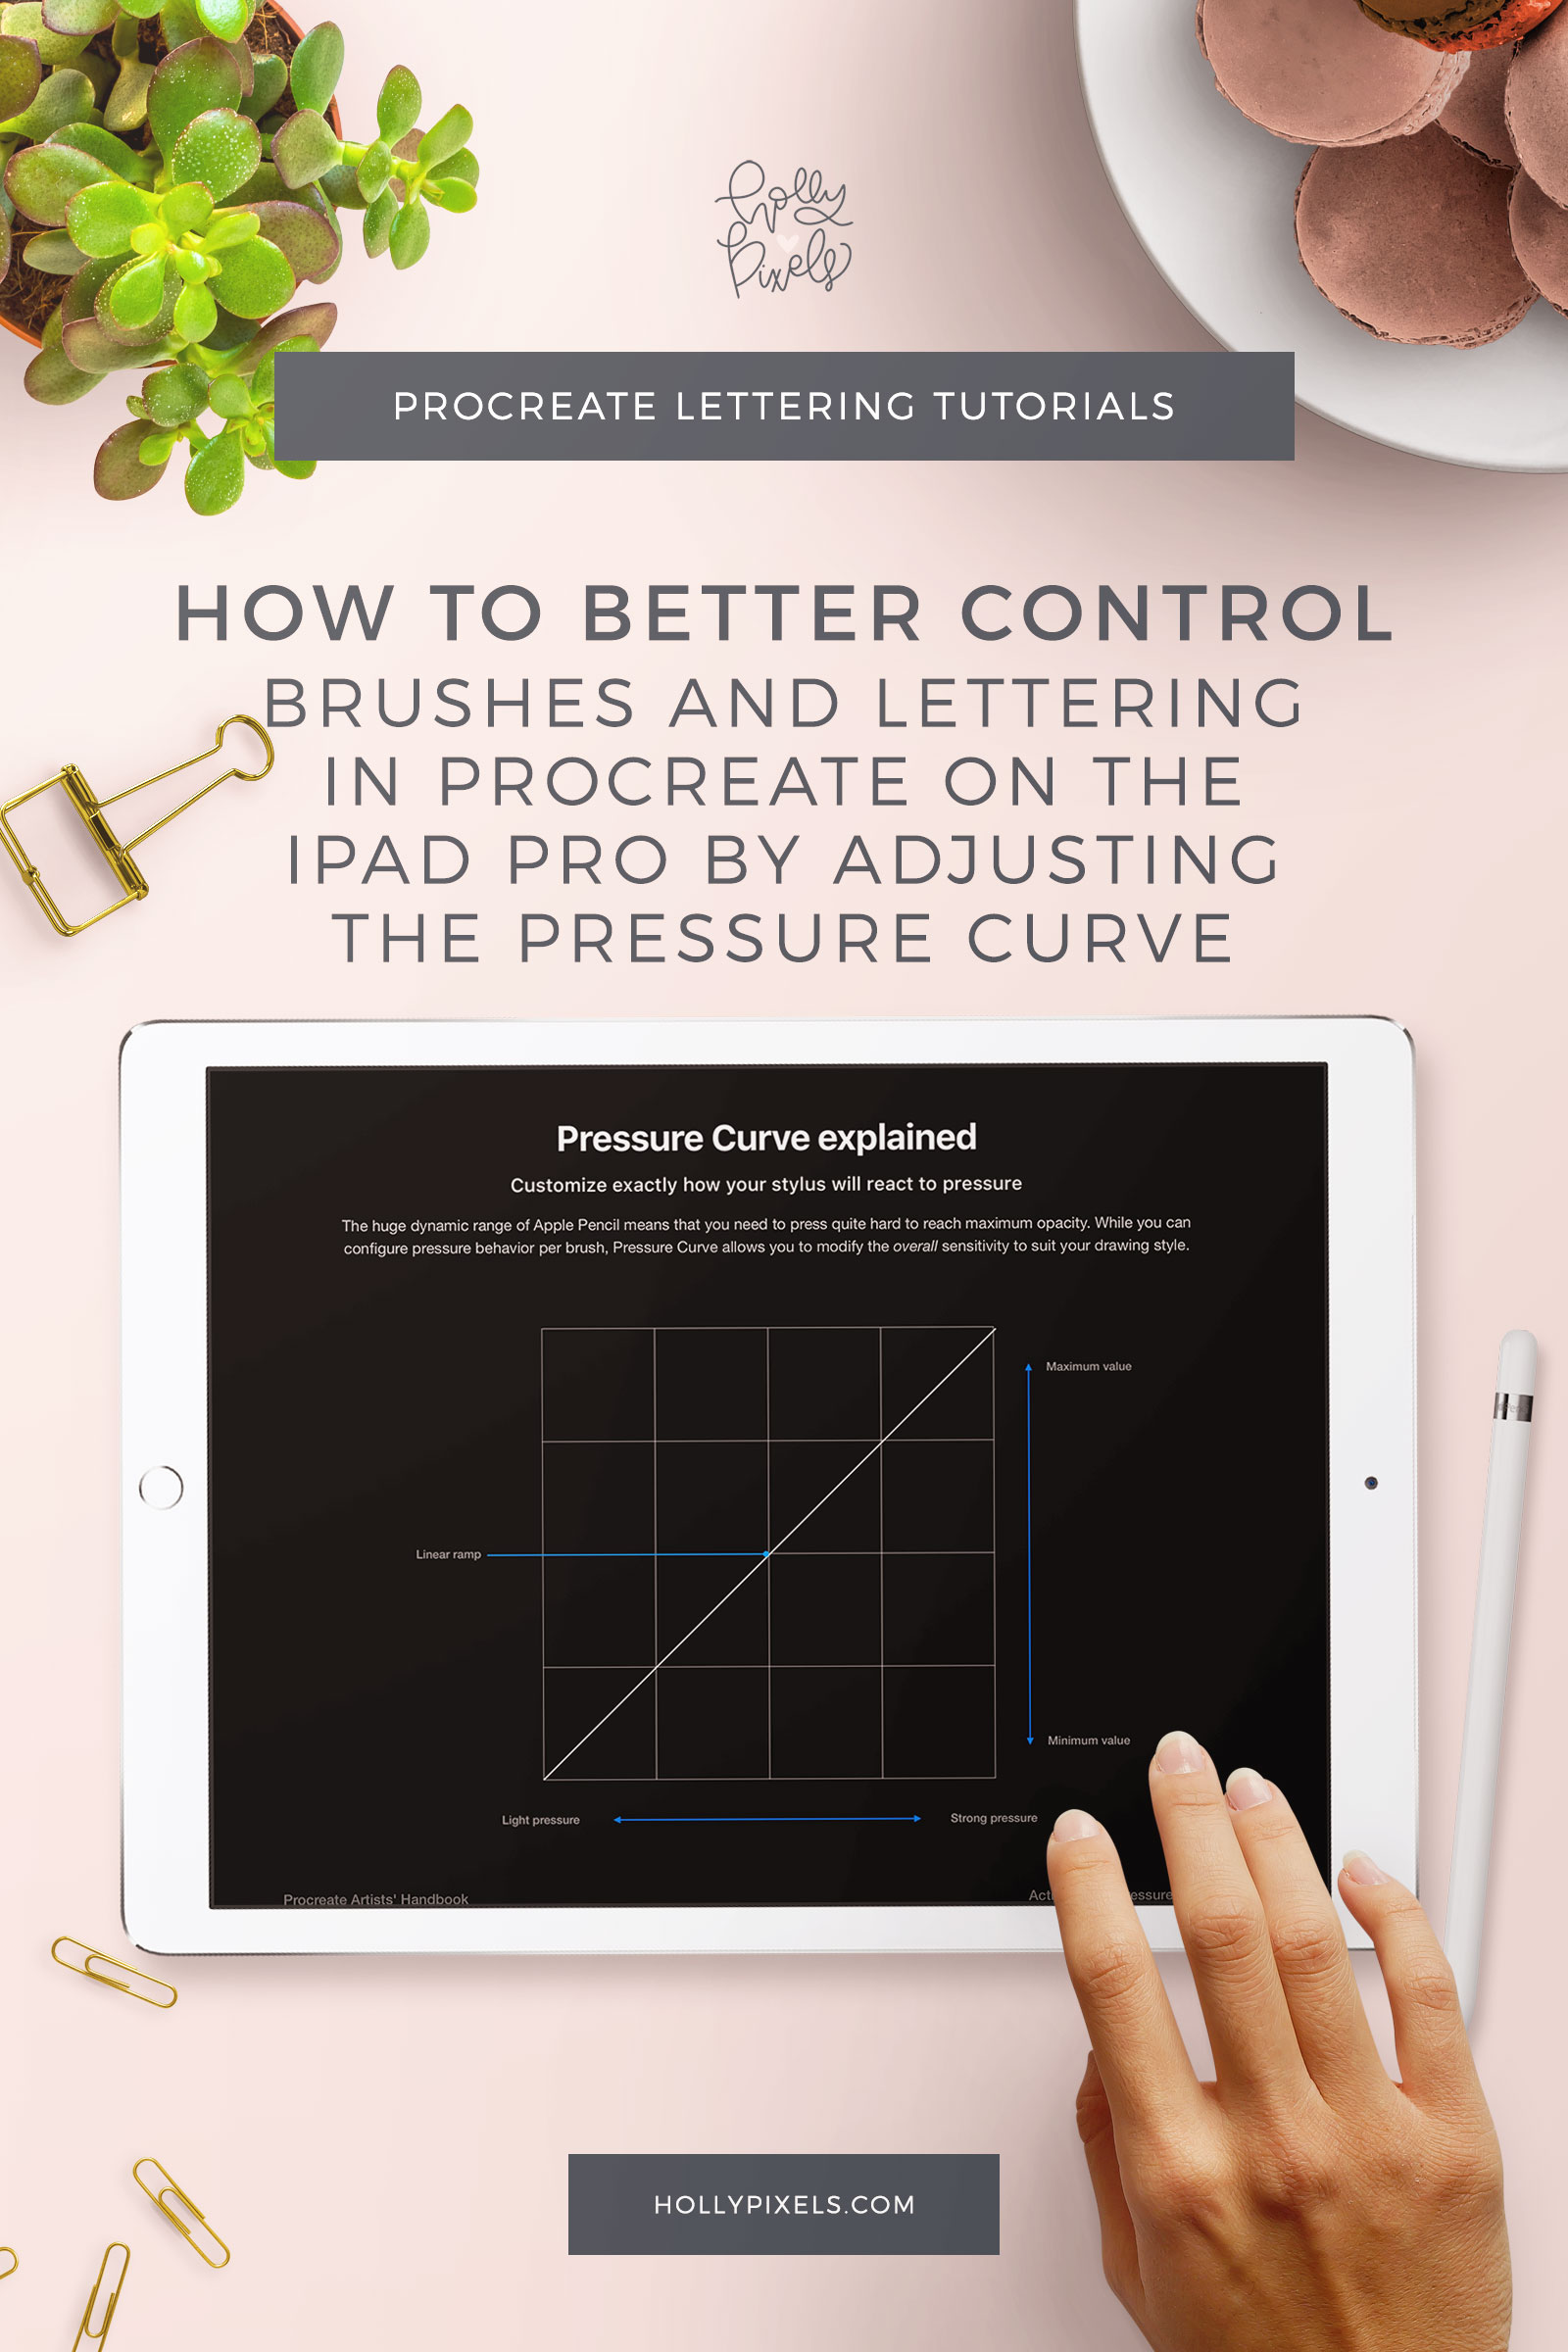 Did you know that you can adjust a setting called Pressure Curve in Procreate so that you can better control your lettering and improve it? Yep, you can!